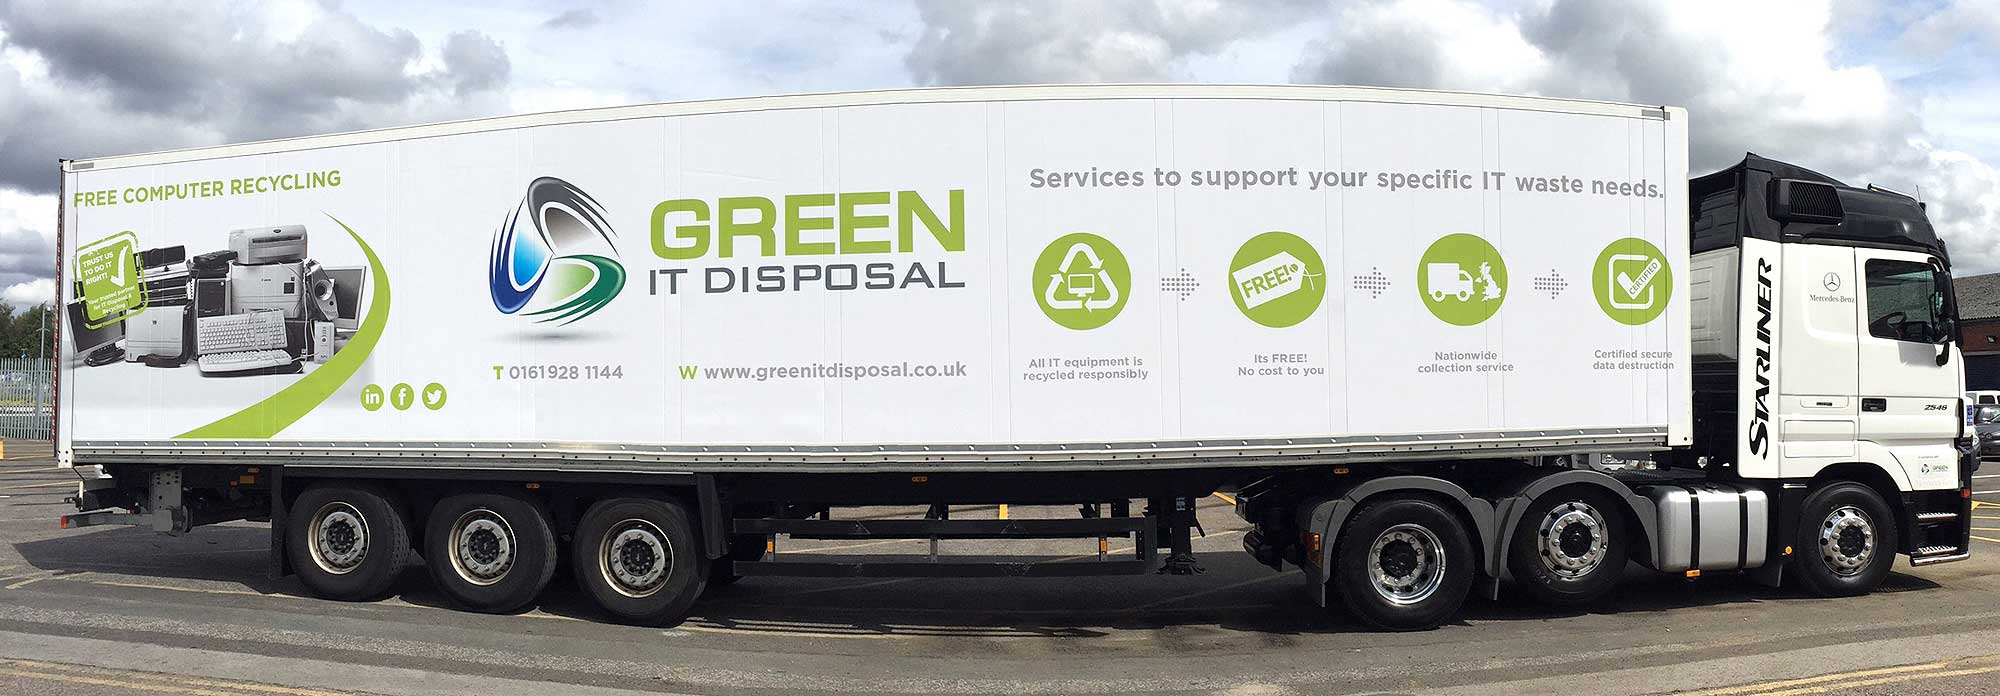 Green IT Recycling: Nationwide Collection